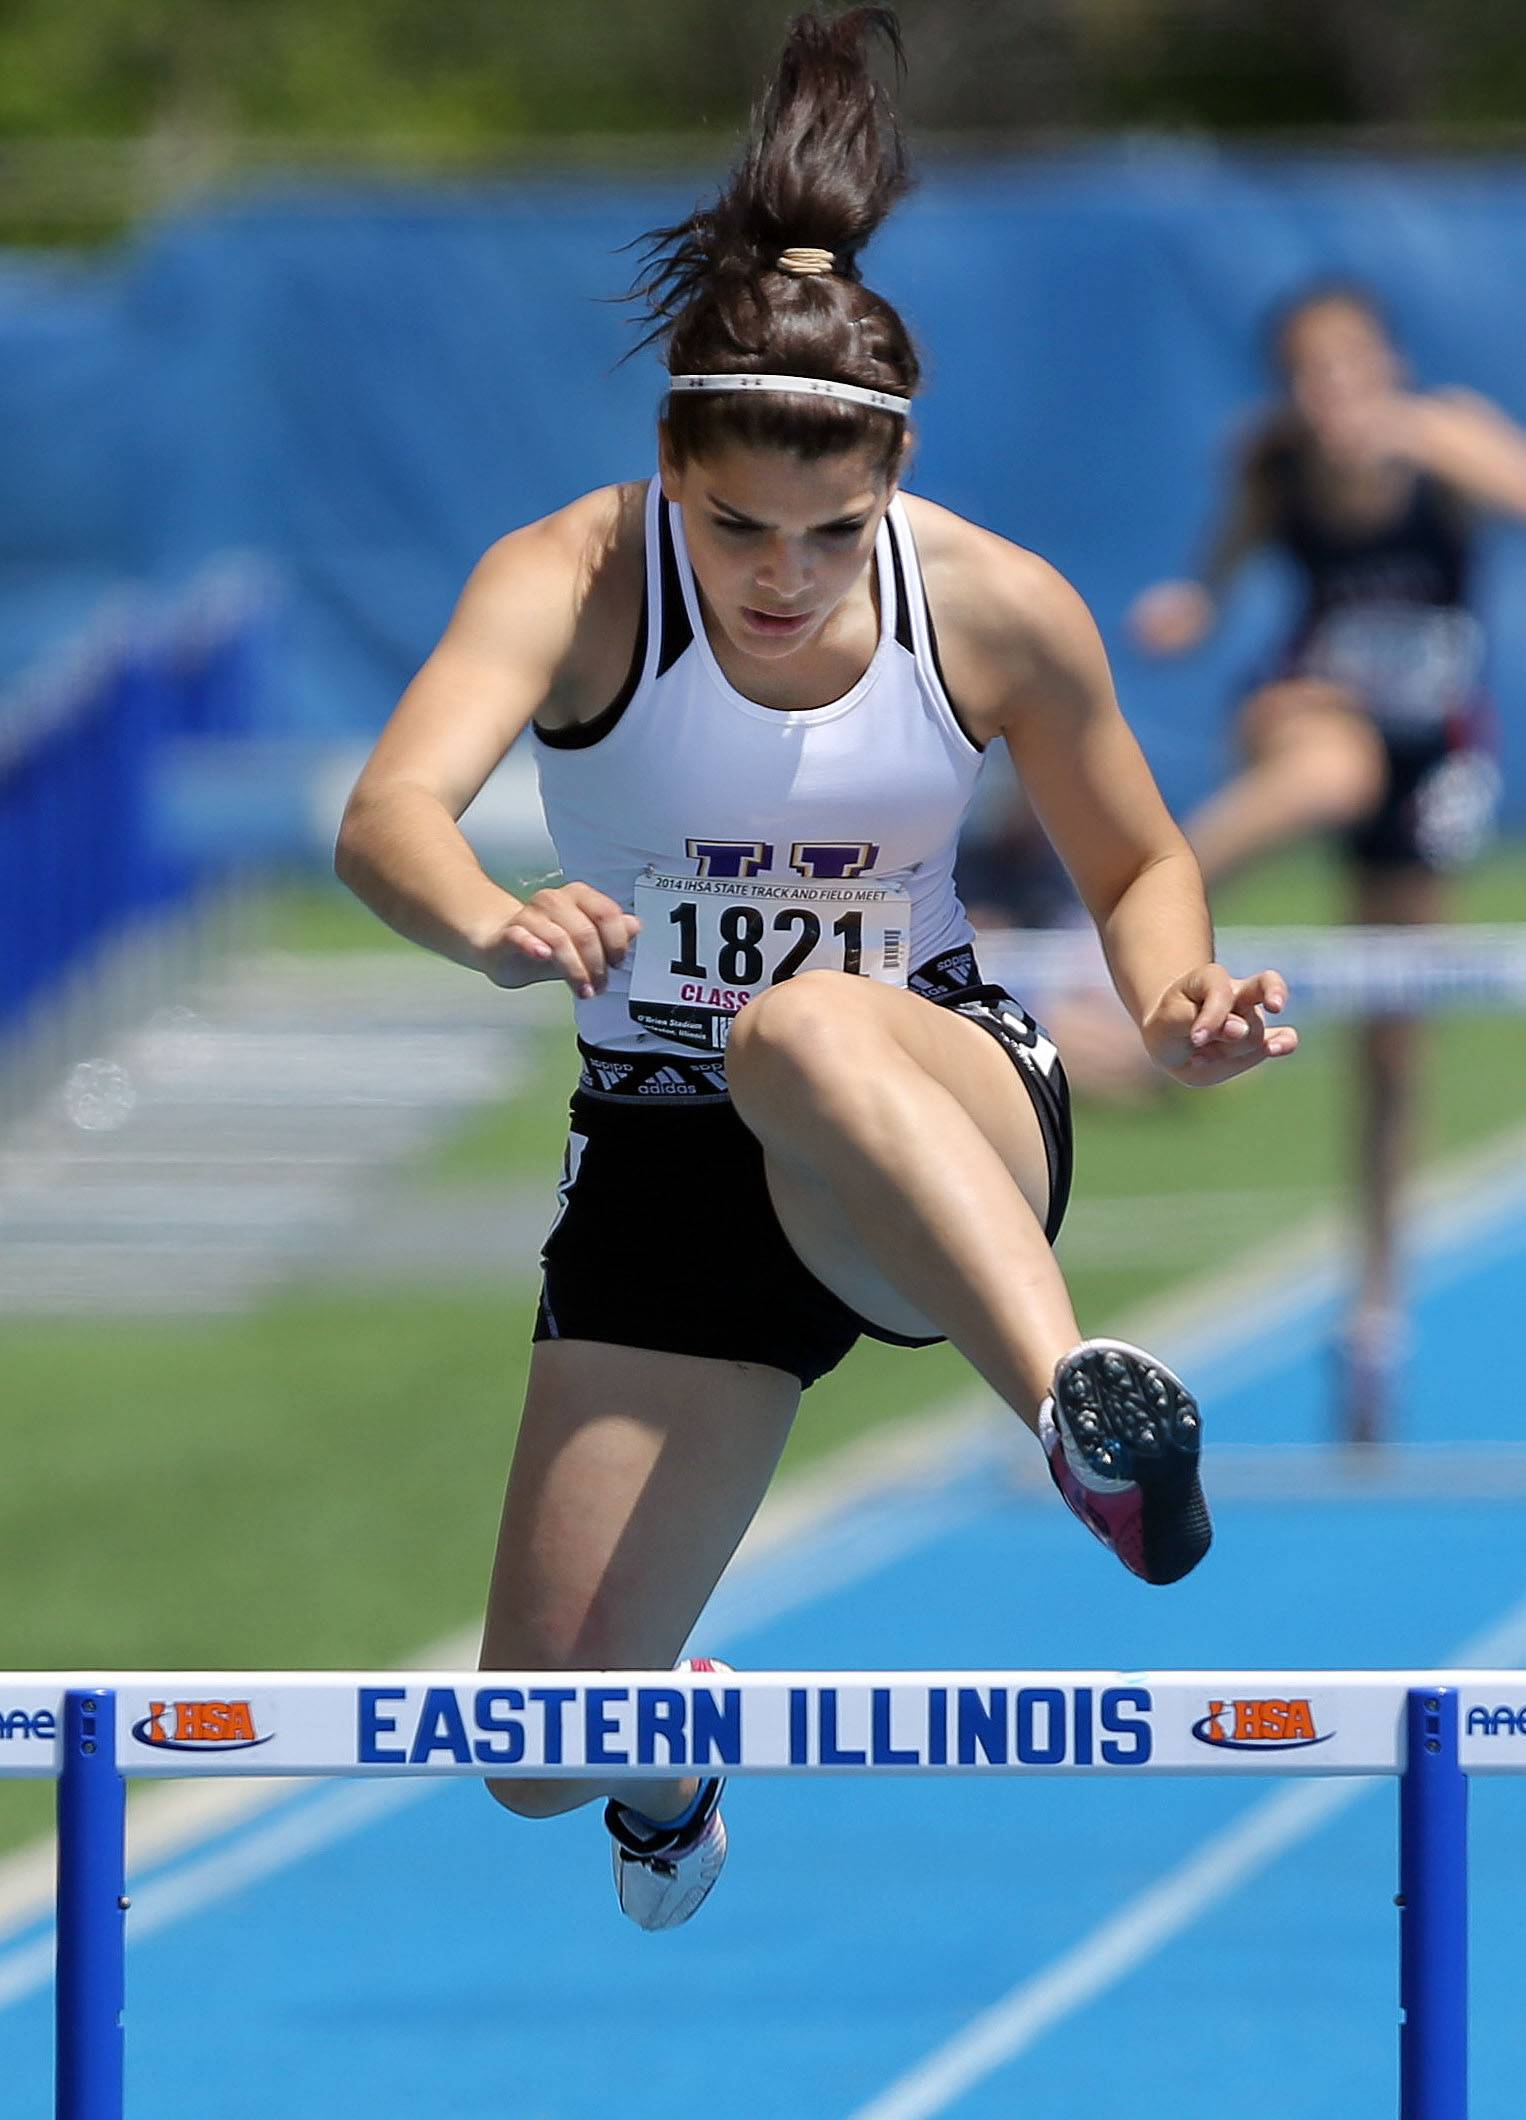 Hampshire's Elizabeth Pagan runs in the 300-meter low hurdles low hurdles during the prelims of the girls track and field state meet at Eastern Illinois University in Charleston Friday.